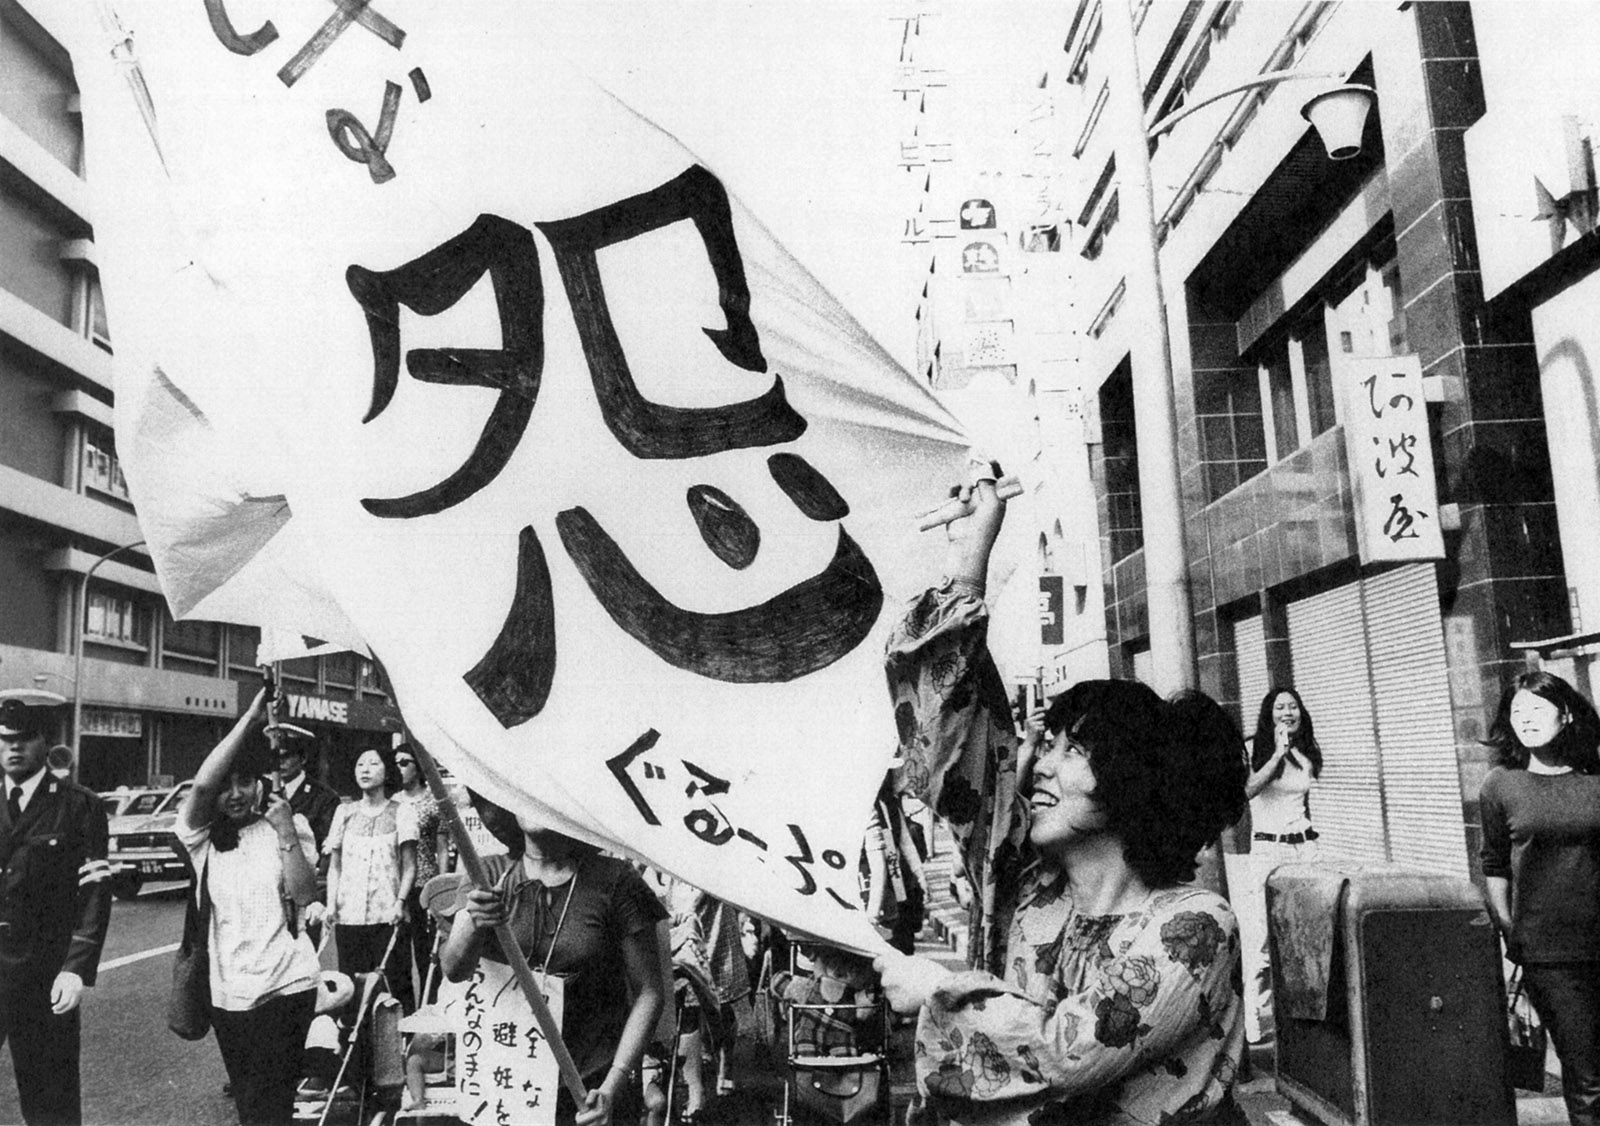 Yumi Doi, an activist with Group of Fighting Women, at a protest against sexual discrimination, Tokyo 1972